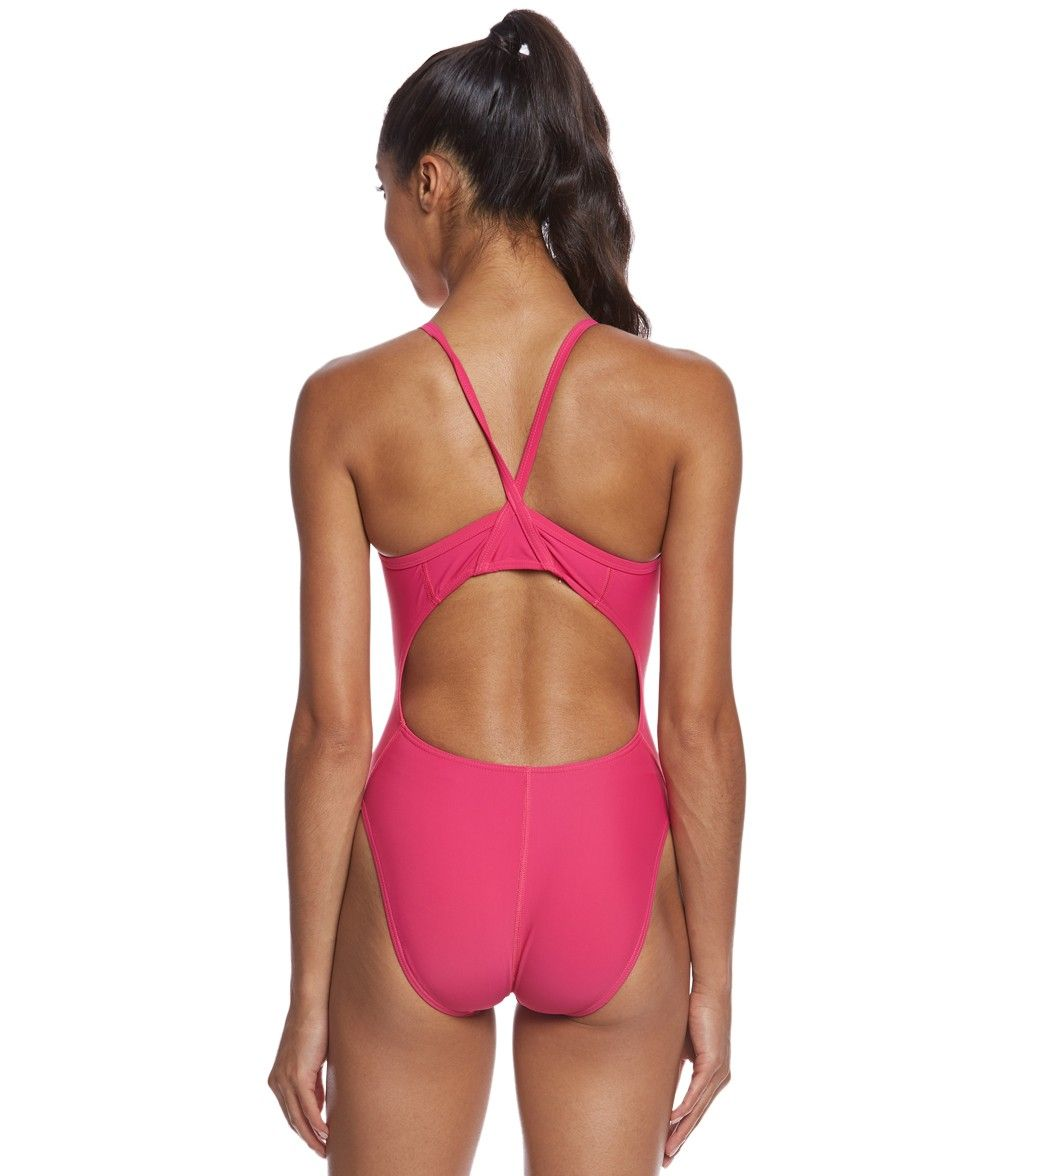 Sporti Solid Thin Strap One Piece Swimsuit at SwimOutlet.com - The Web's Most Popular Swim Shop